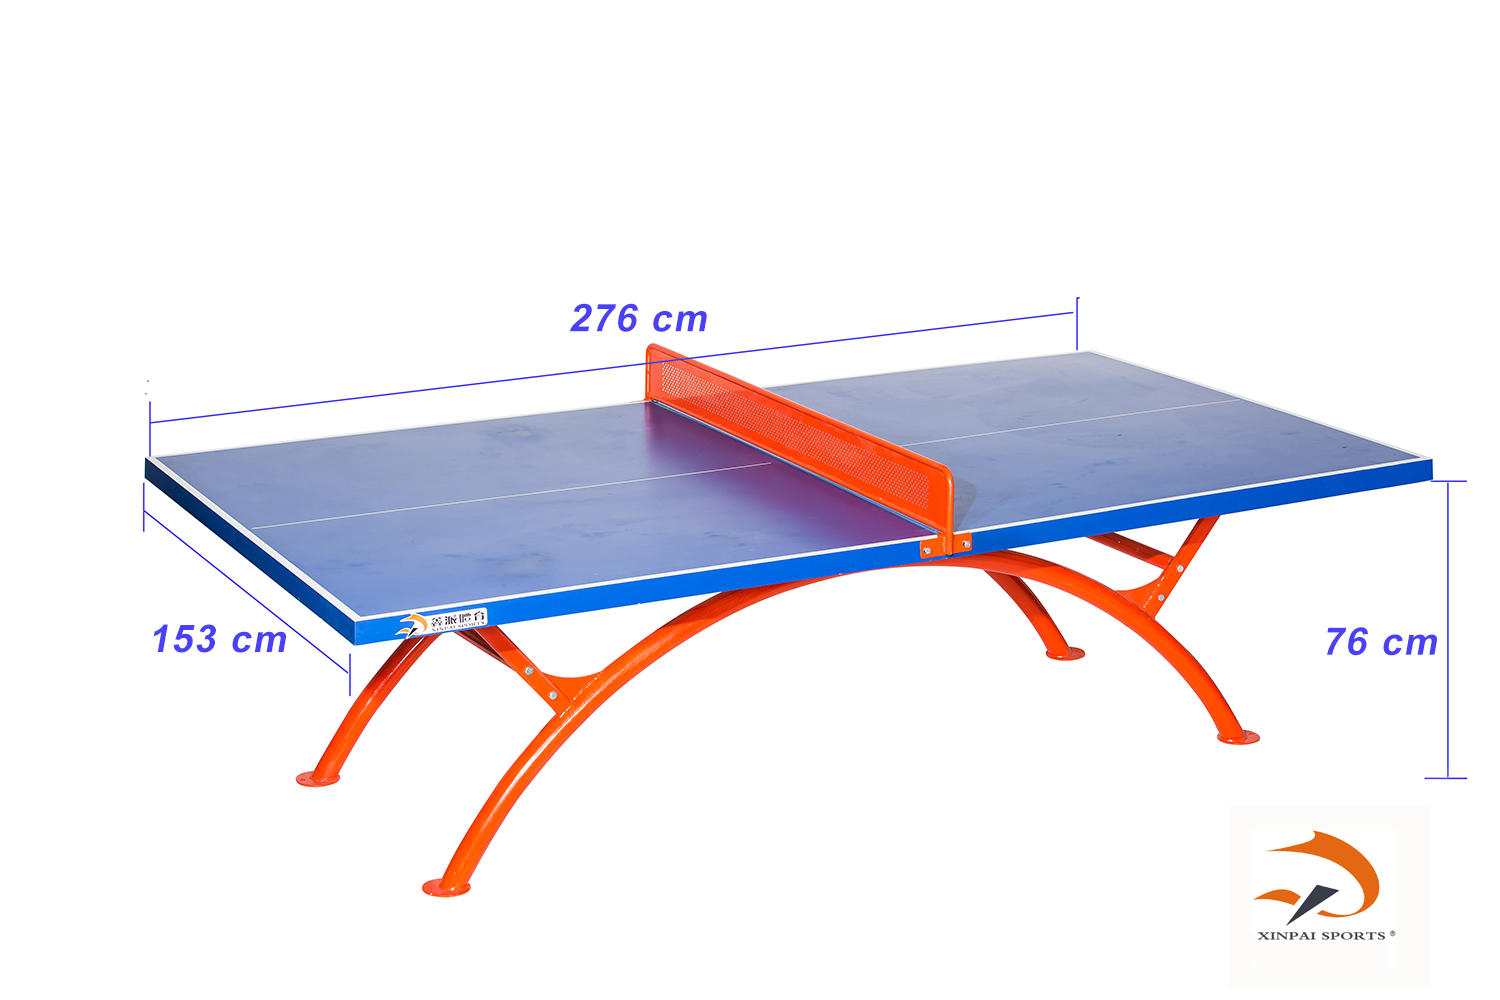 How to make your Ping pong table an attractive option in the vast market?